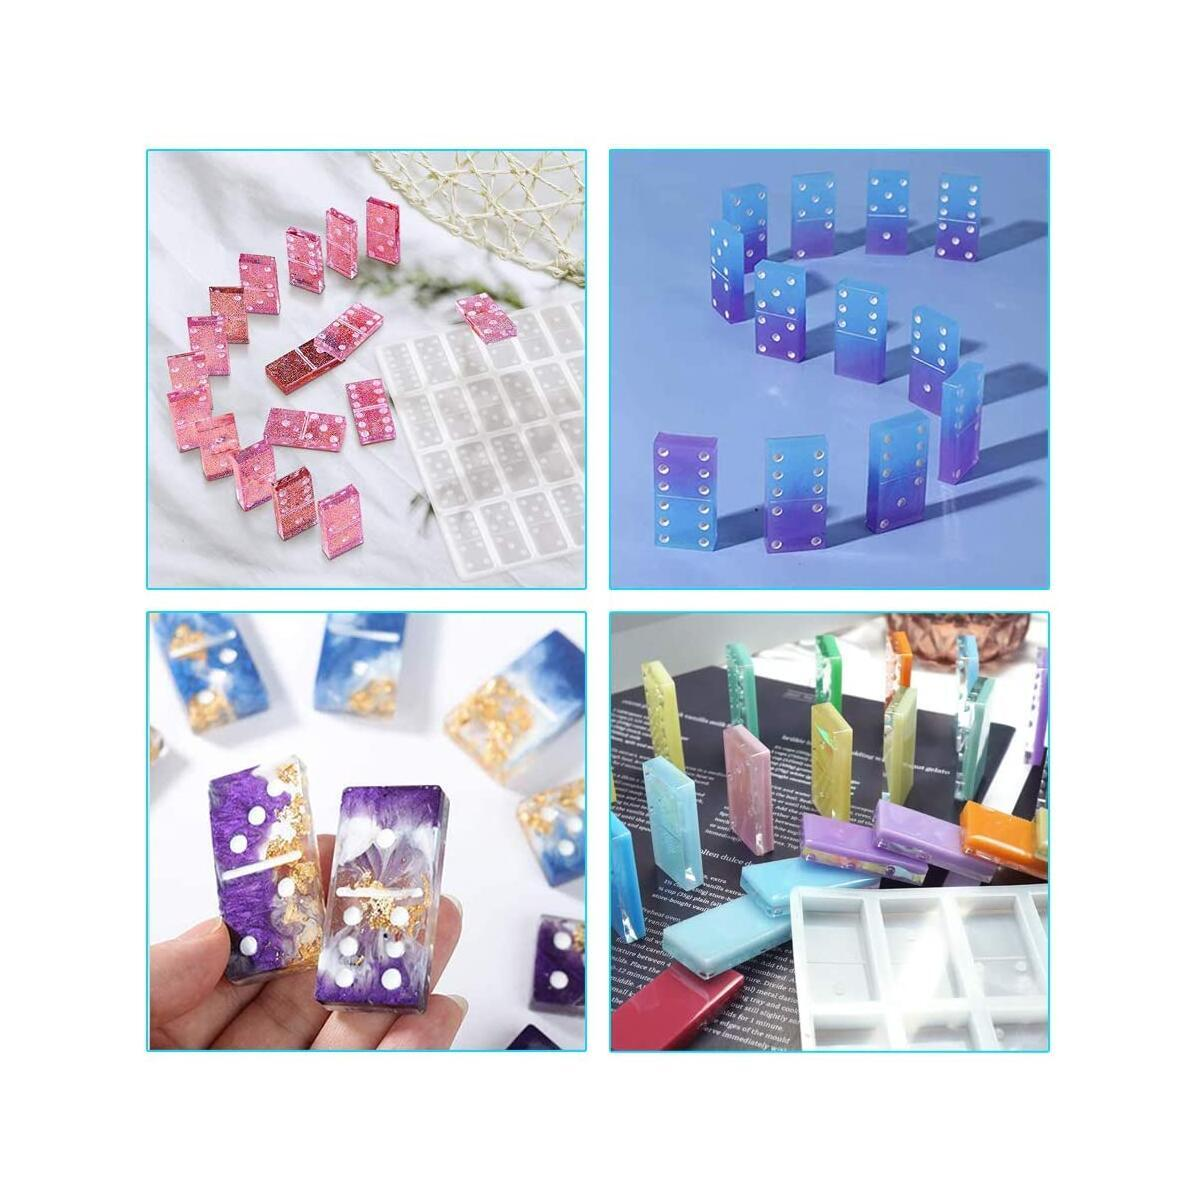 Muerk Resin Molds, Domino Molds for Resin Casting, Silicone Domino Double Six Epoxy Resin Molds, DIY Silicone Molds for Personlized Dominoes, Game Molds